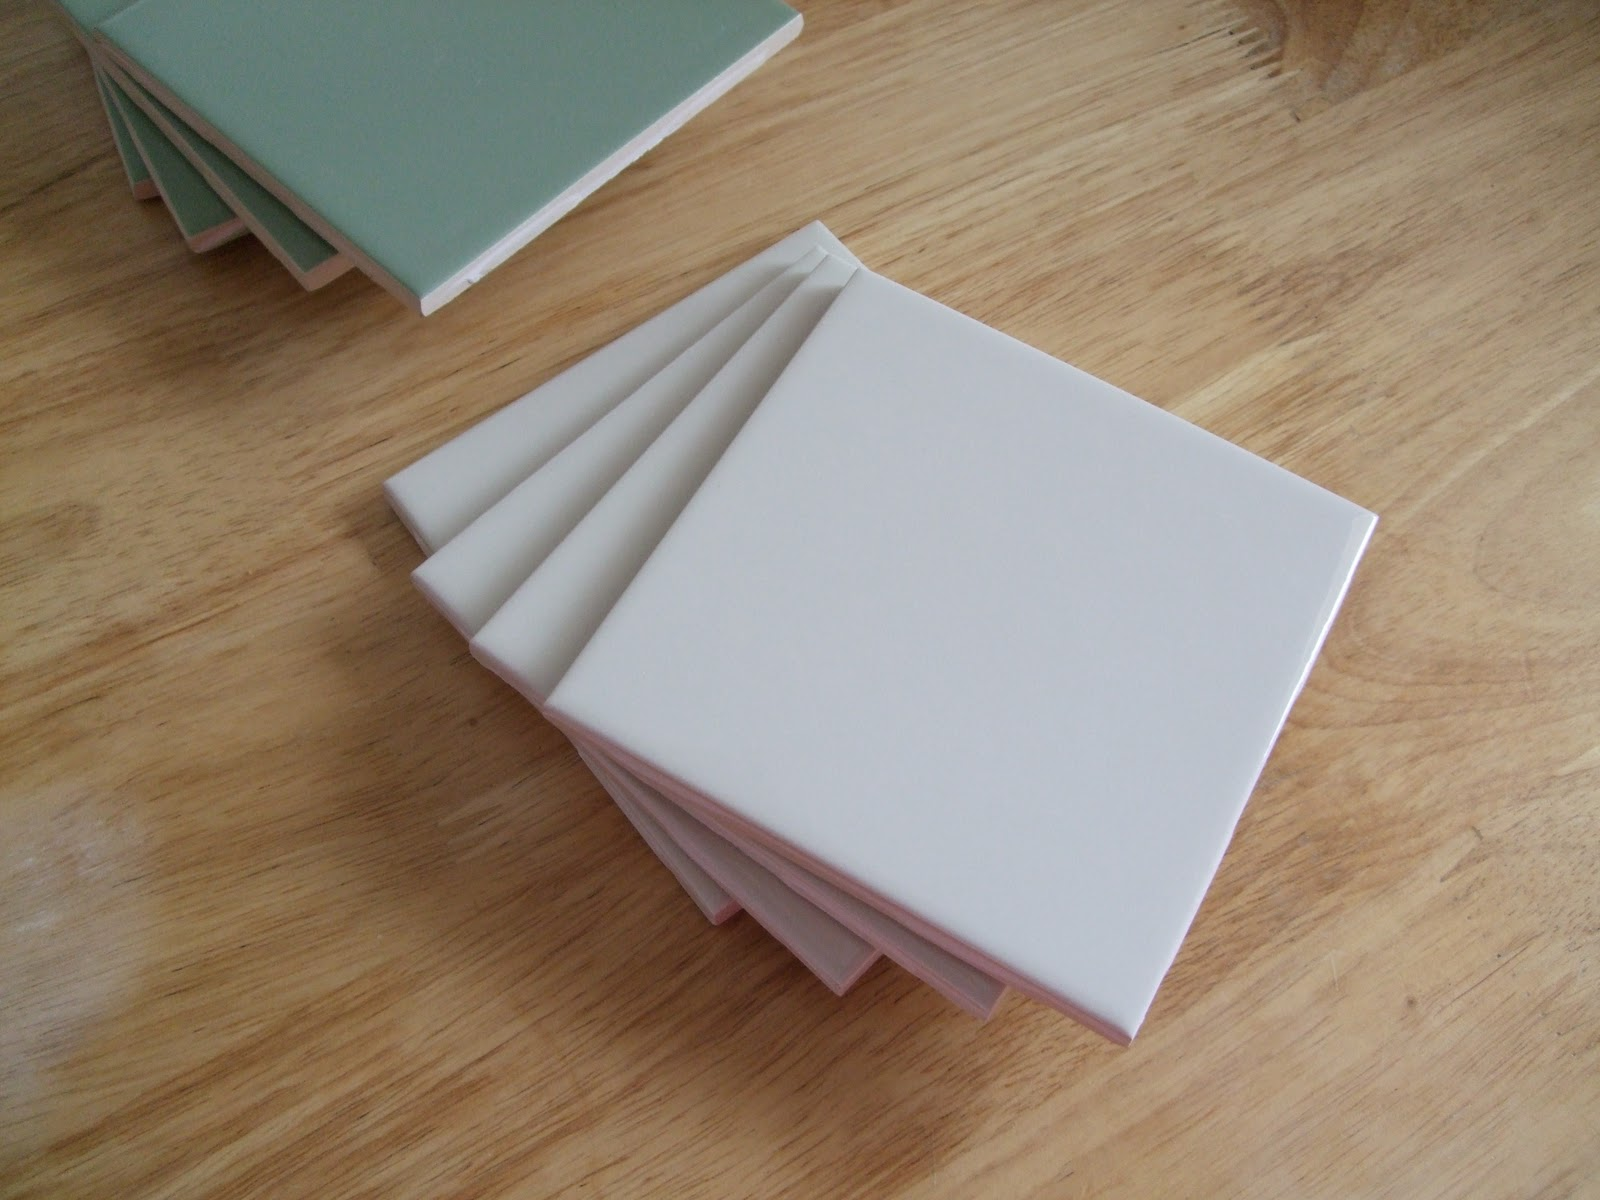 Why Buy When You Can Diy Ceramic Tile Coasters